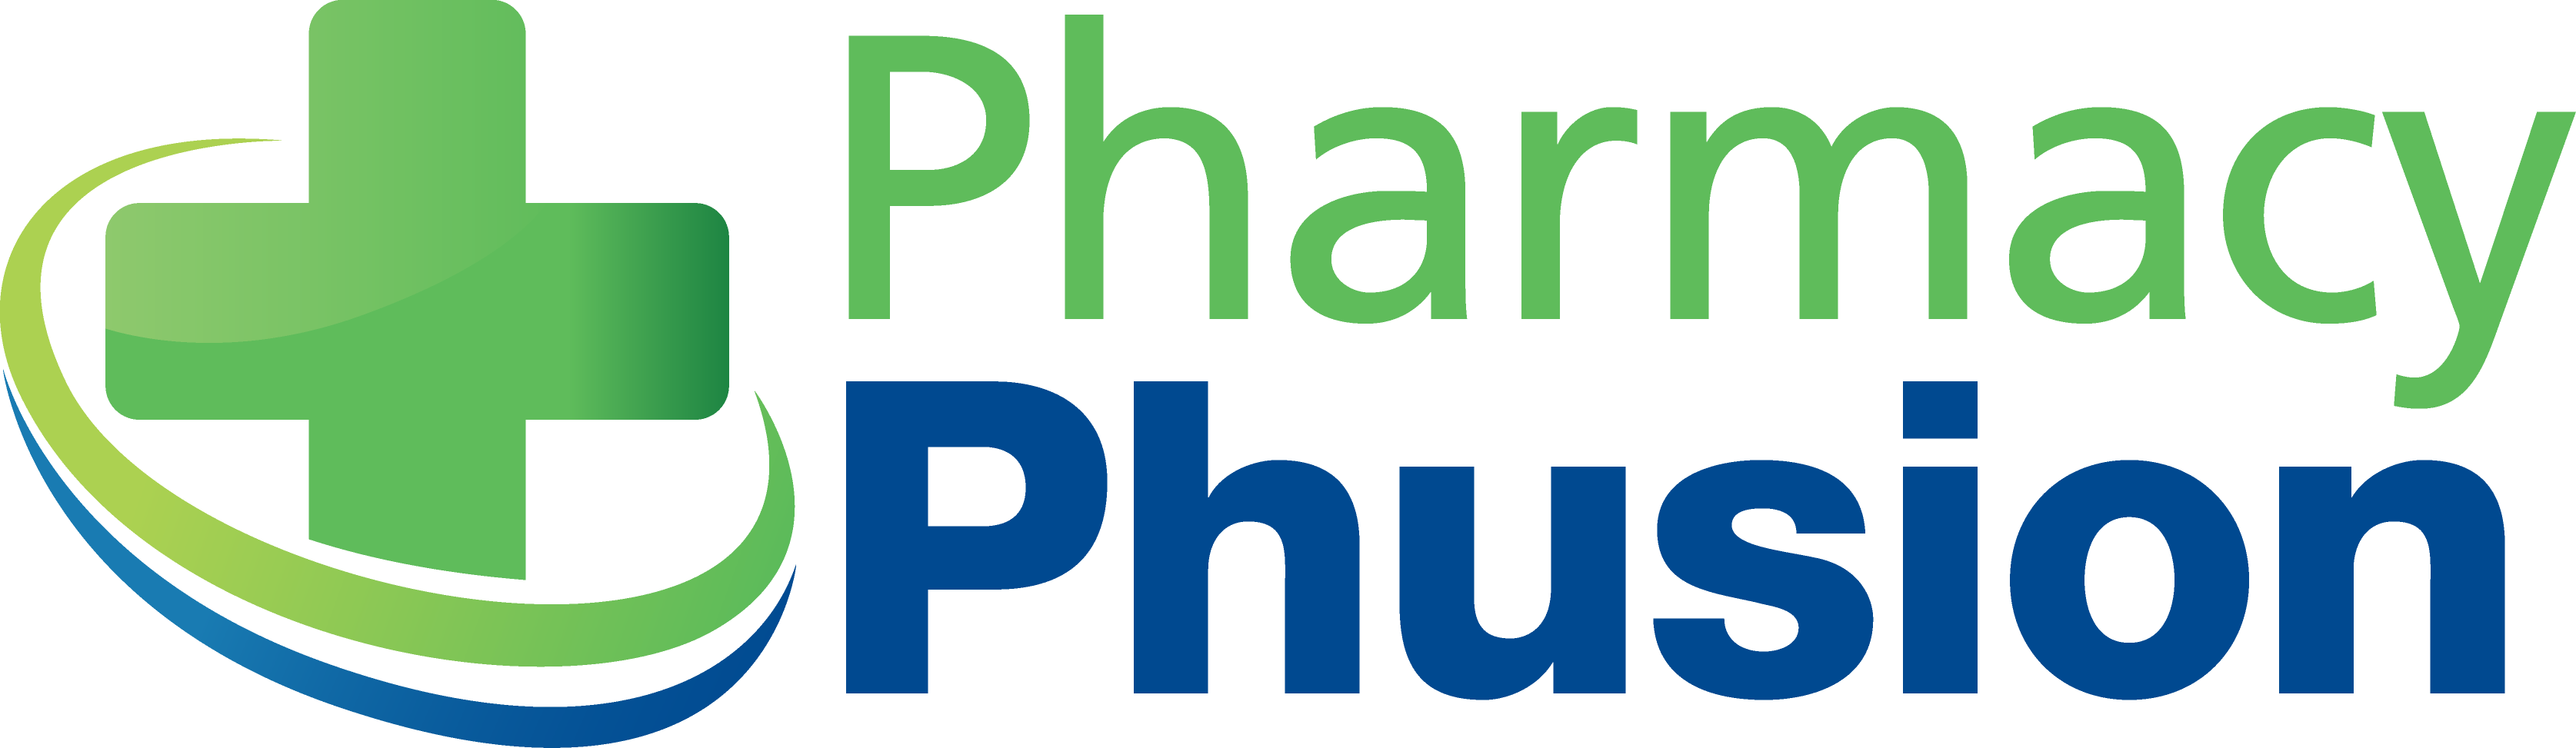 Phusion Payments